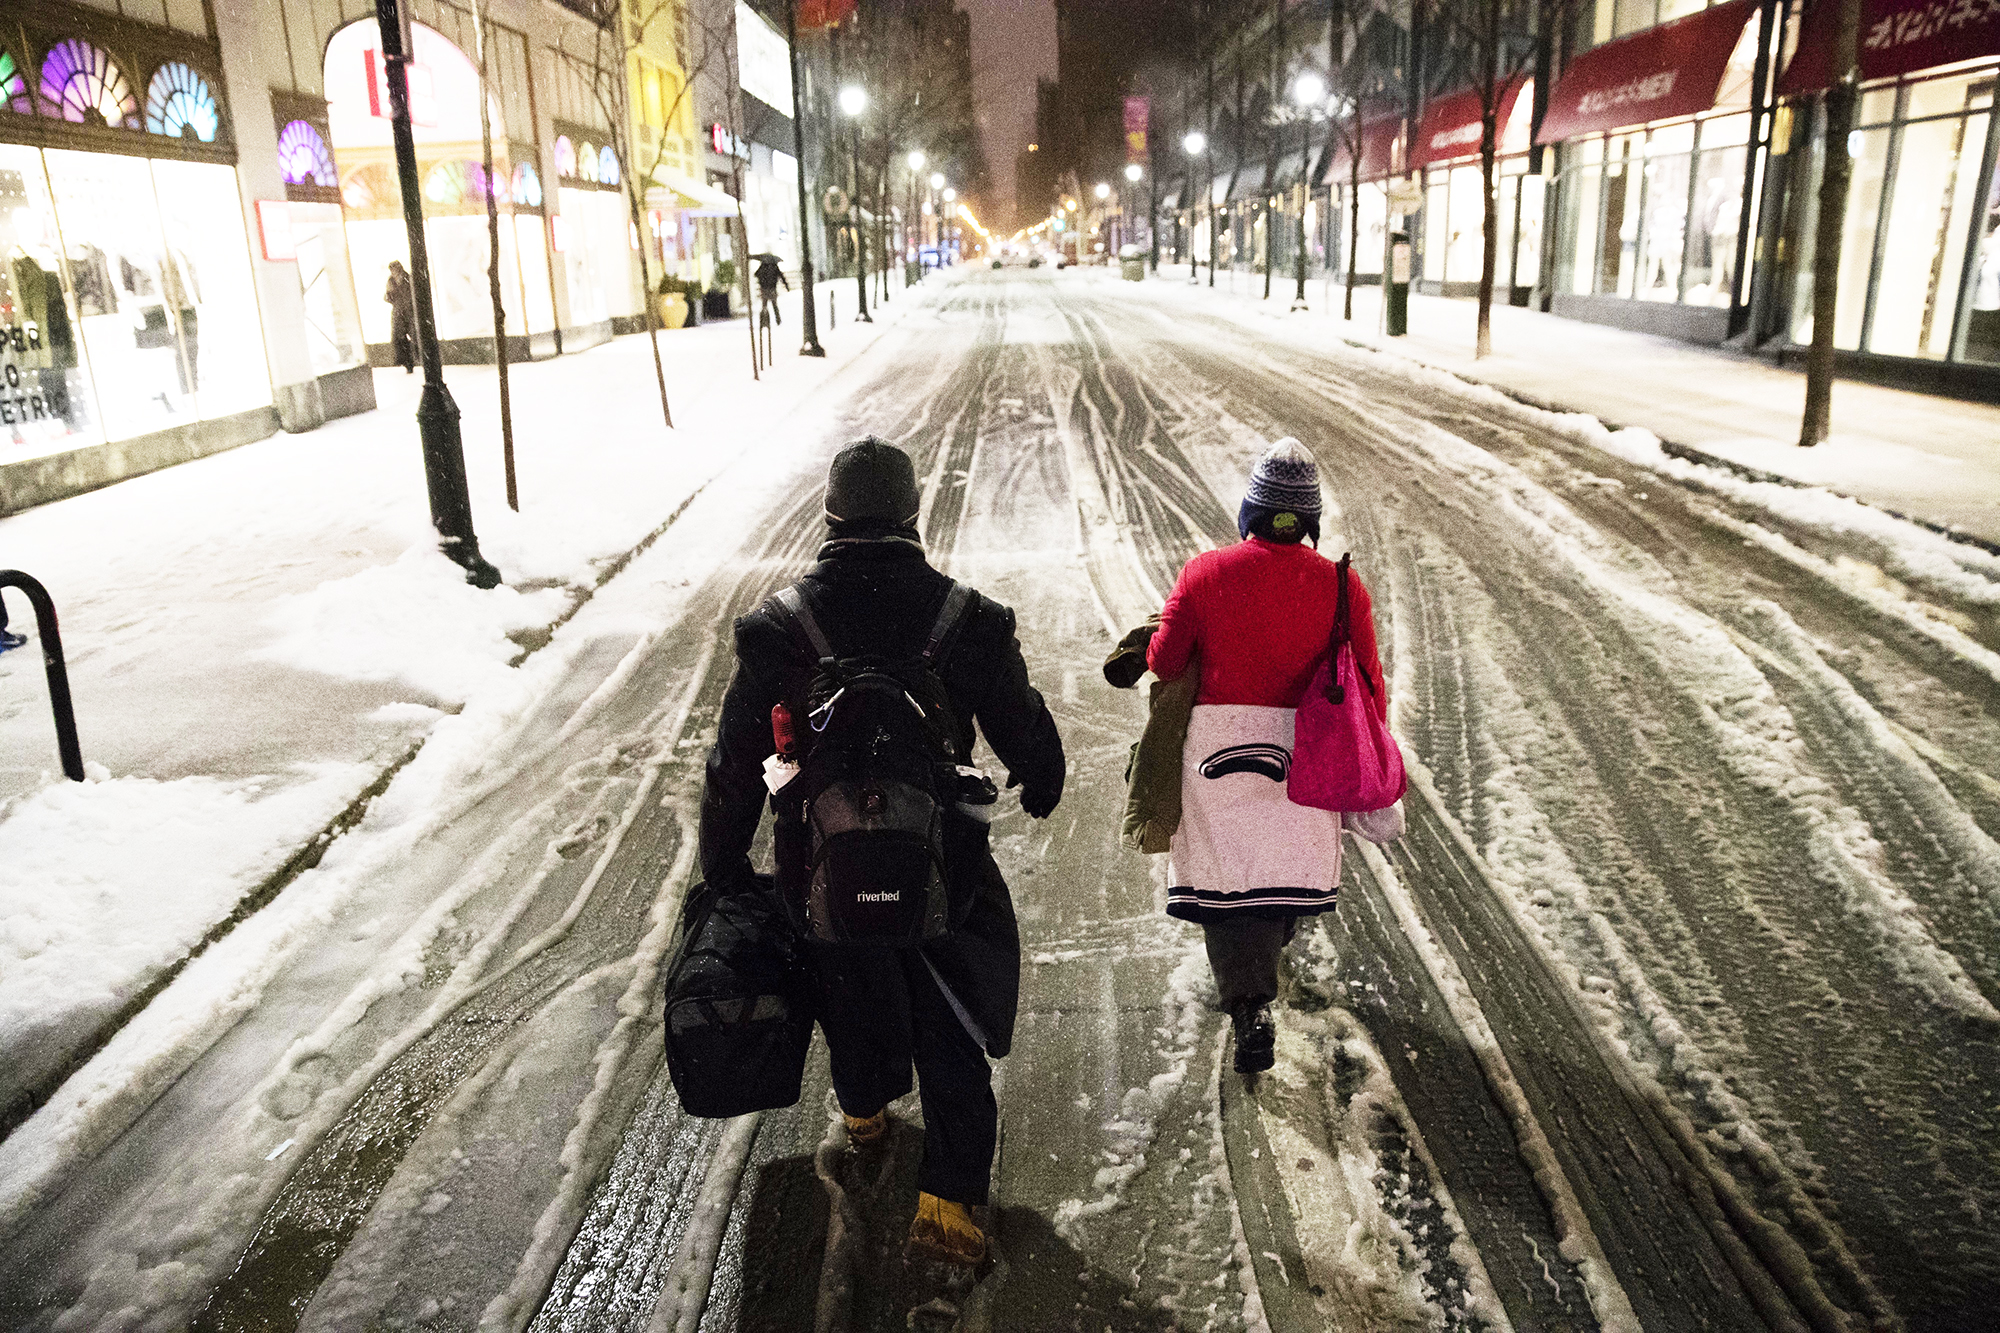 A couple walks in the street during Winter Storm Stella in Philadelphia, on March 14, 2017.